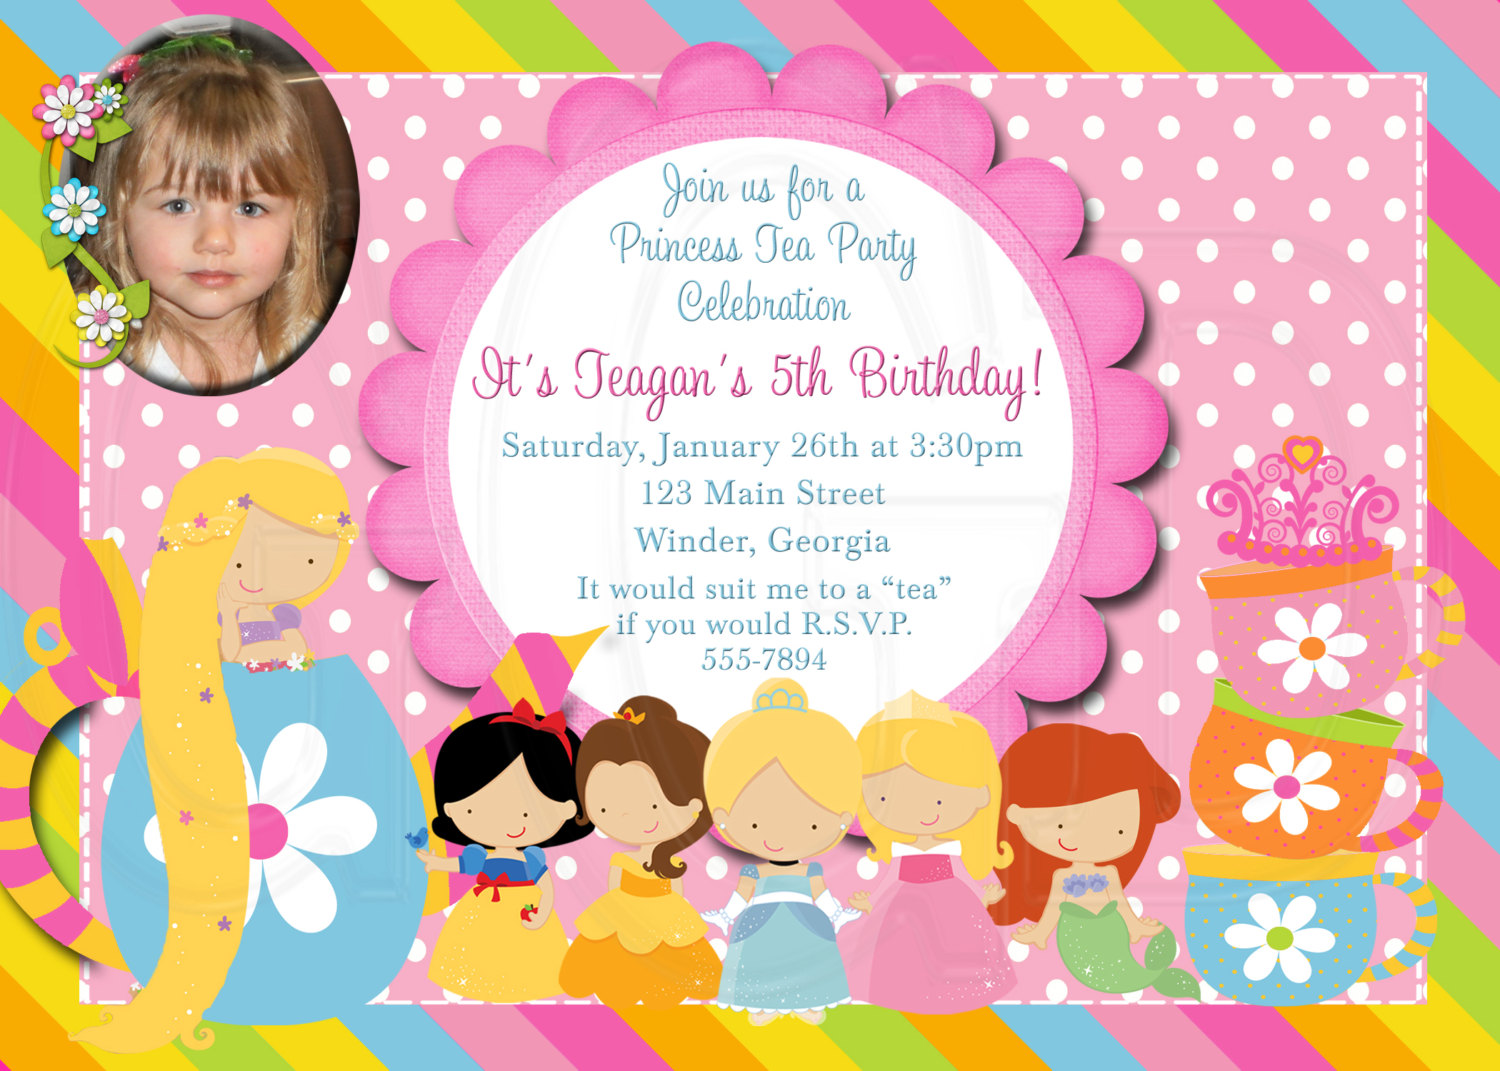 Tea Party clipart disney princess Item? Birthday Party this Princess